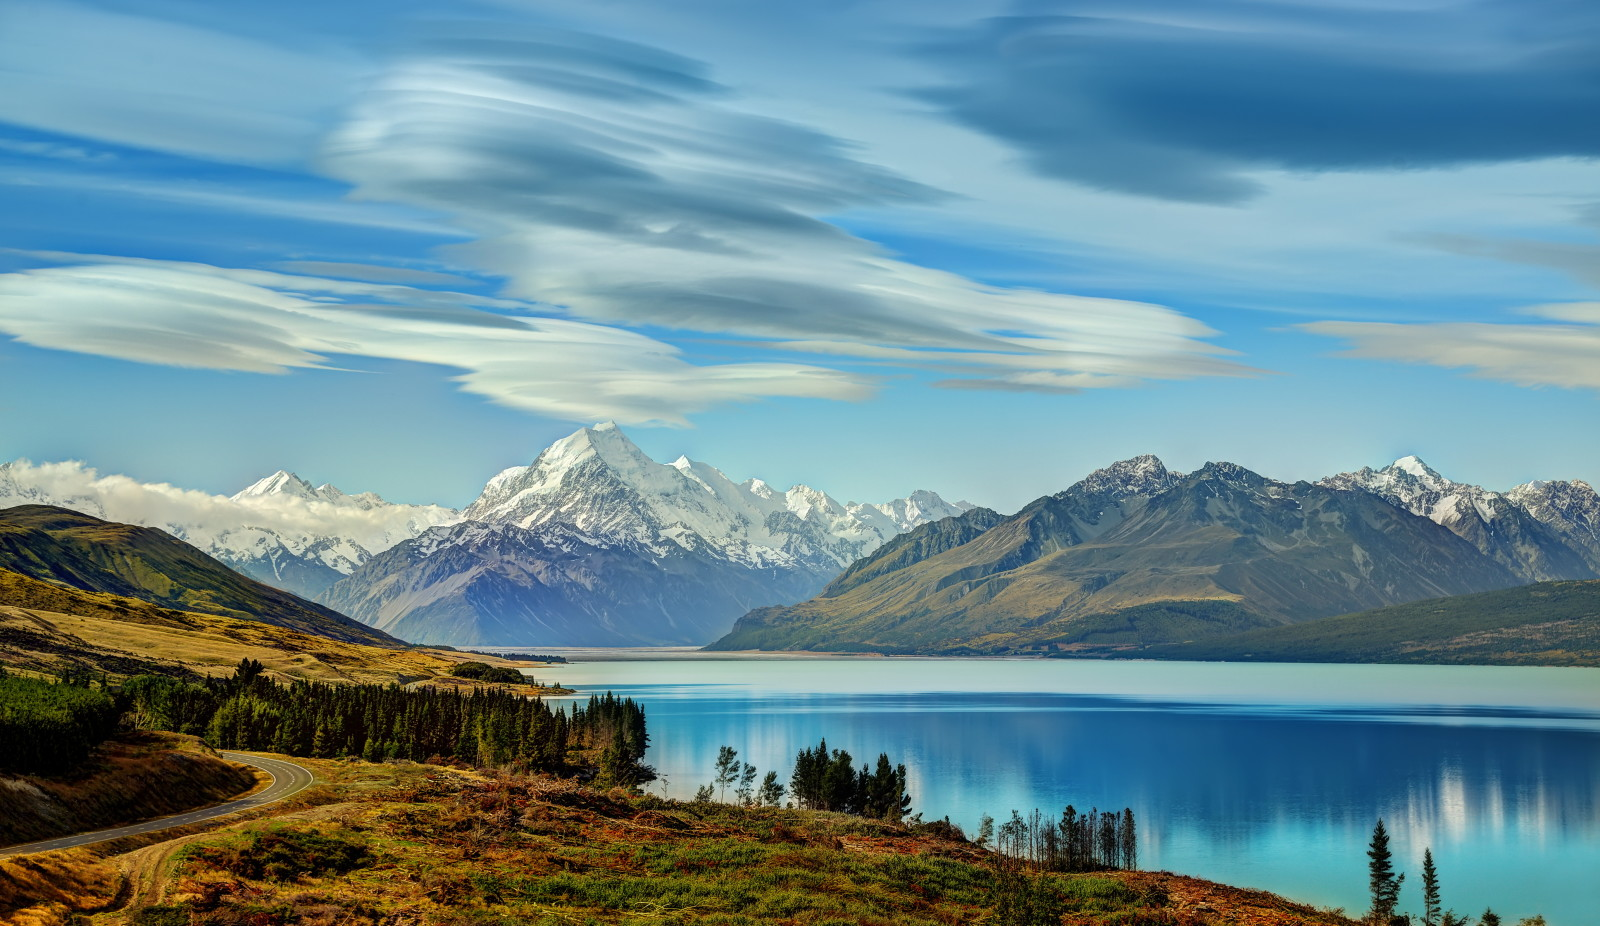 Lake New Zealand Mountains Scenery Pukaki Nature reflection 3872x2241 e1441934749914 What is a Migniter? A Male Igniter, Of Course. Meet Todd Harper.